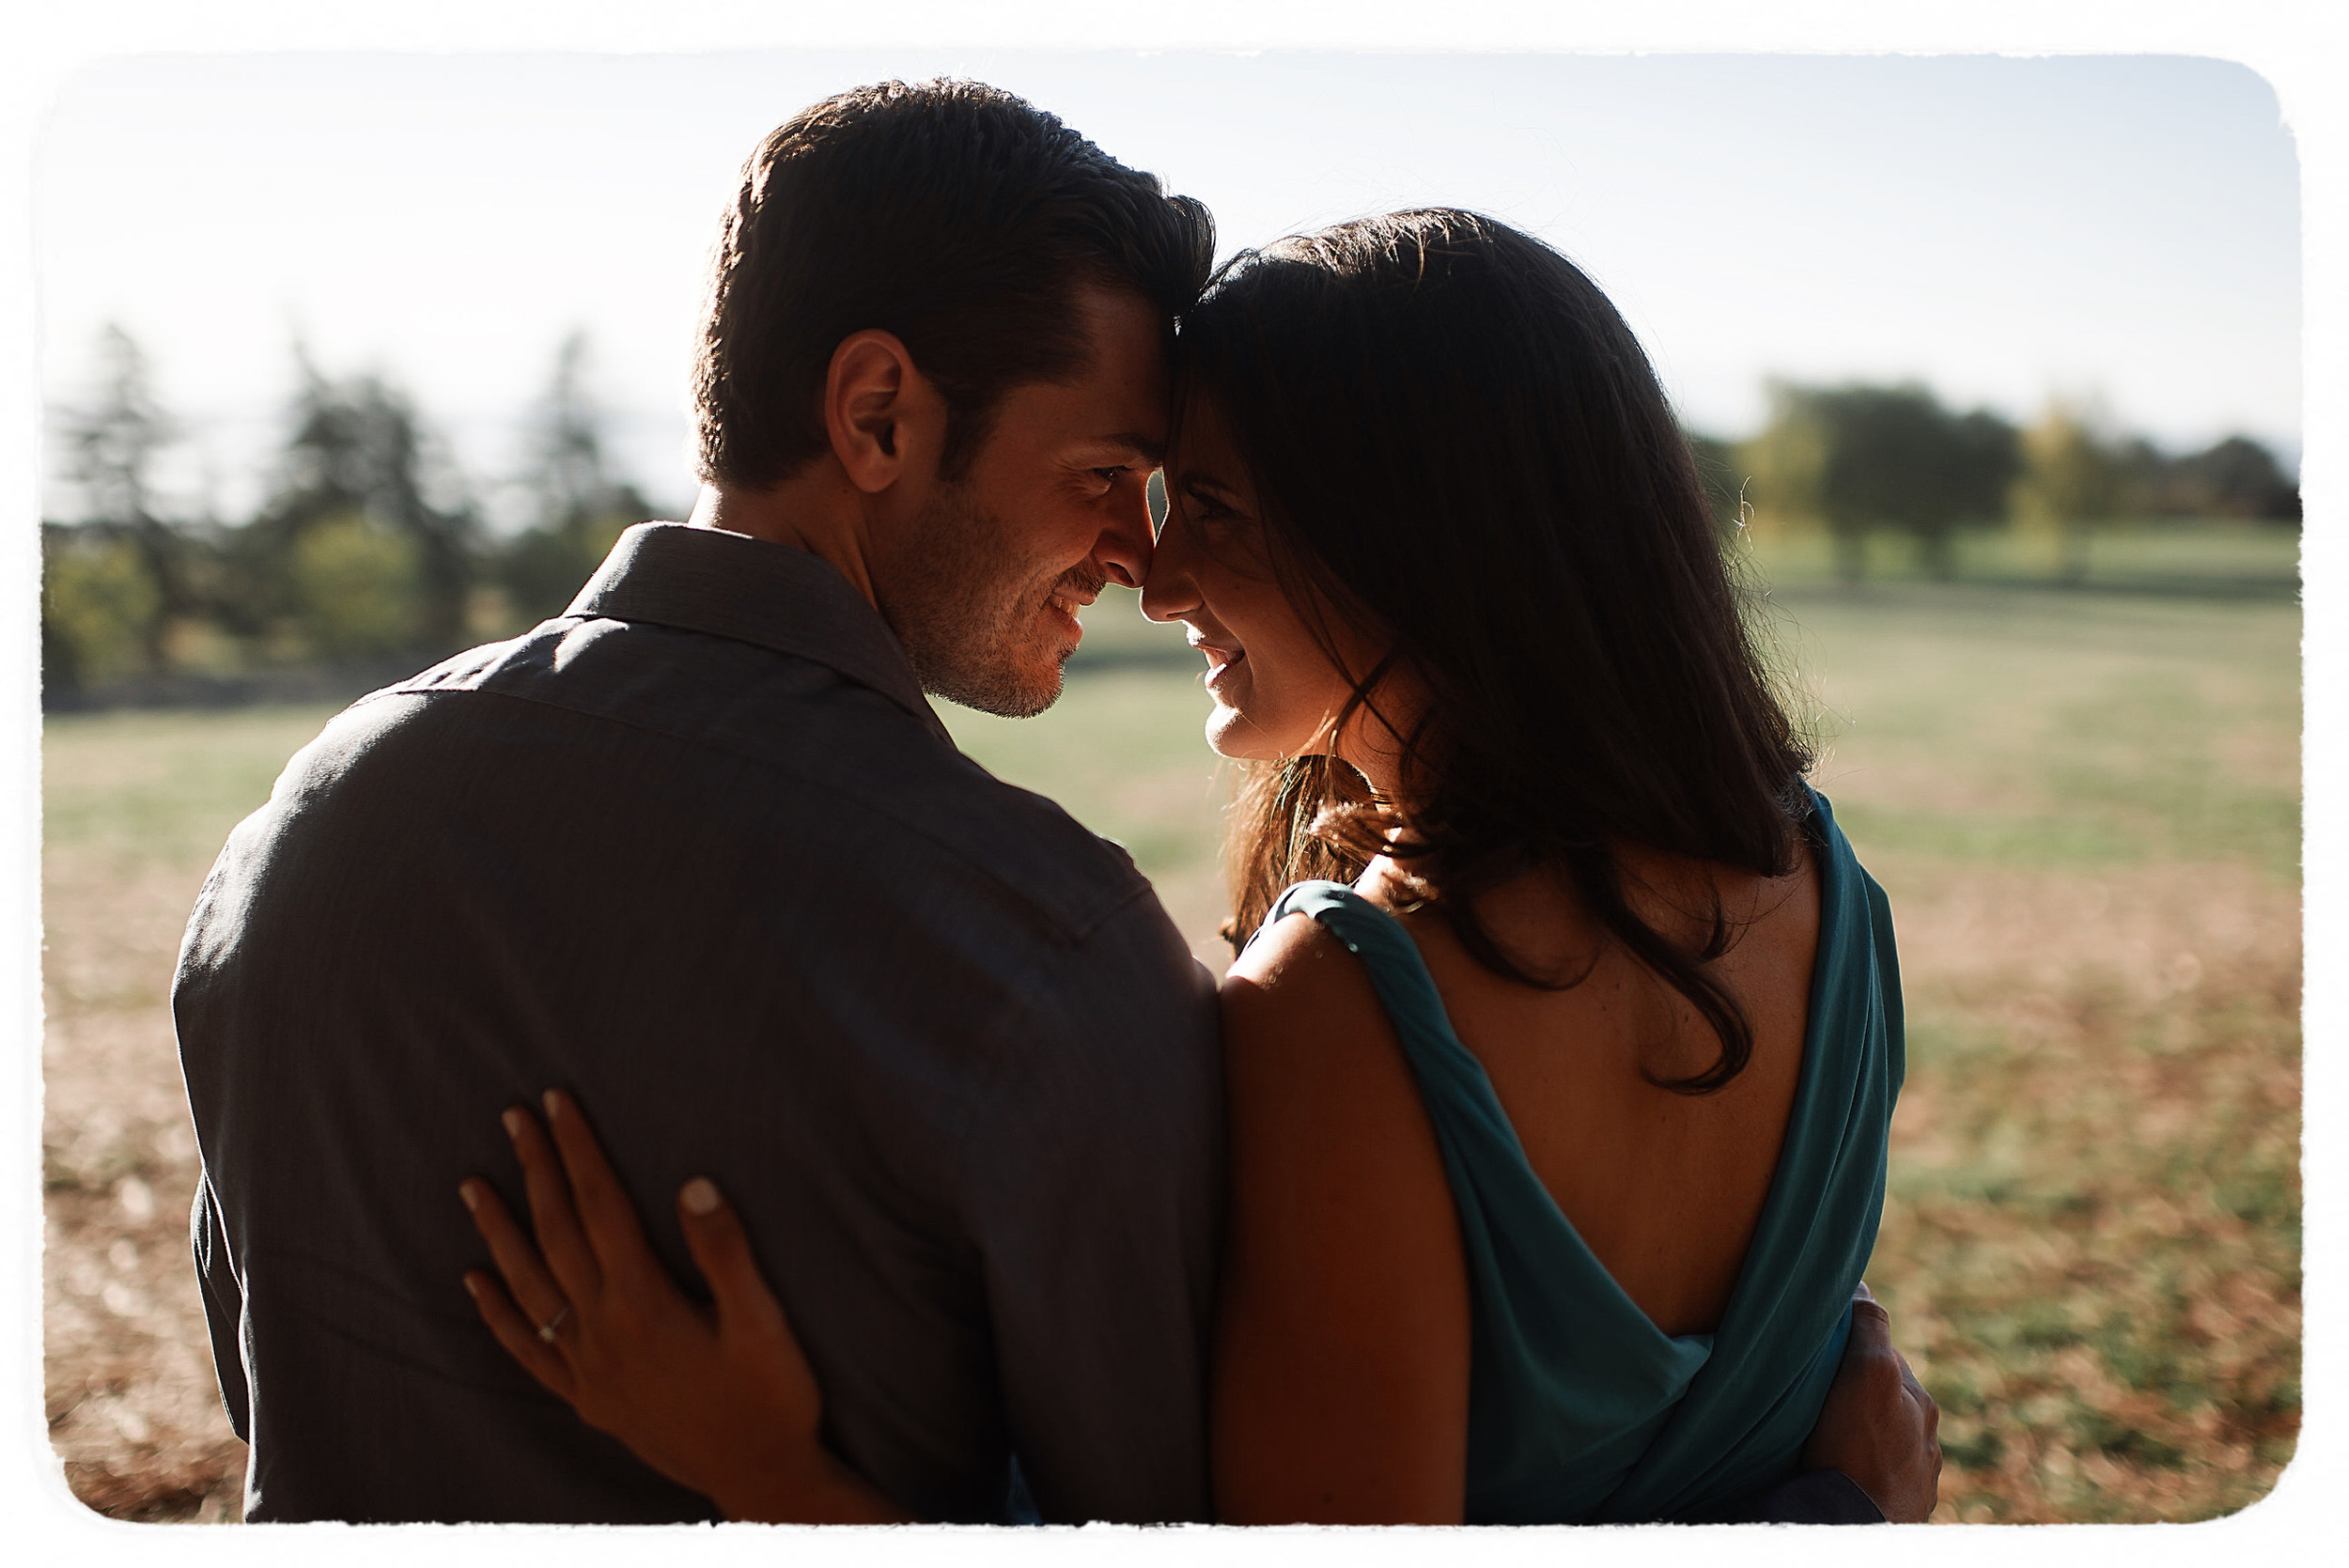 Kelly&Mike-EngagementSession-OriginalCollection-58Film.jpg